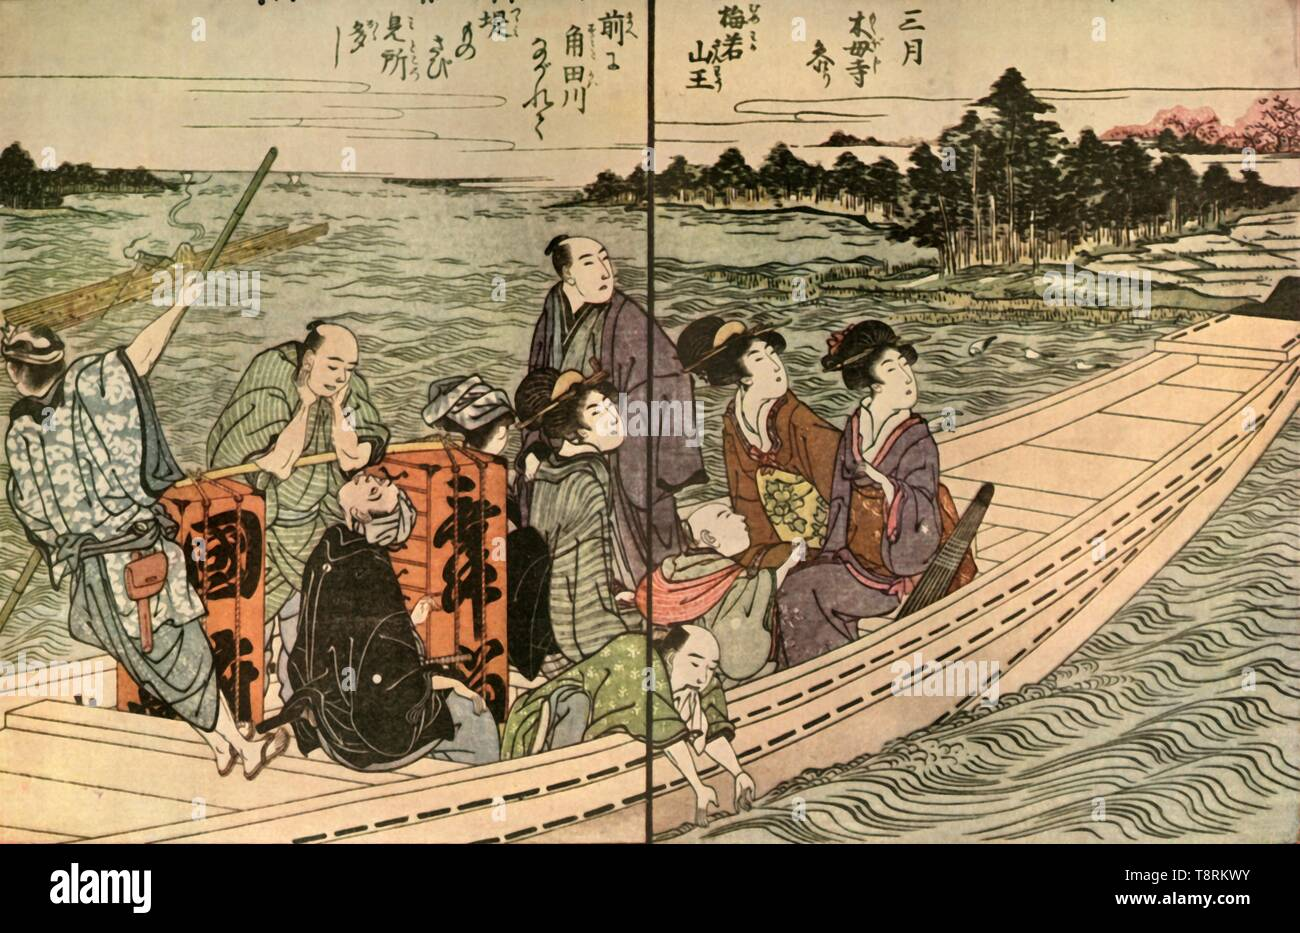 "People travelling in a boat, 1804, (1924). The boatman propels his craft with a long pole. One of his passengers has two large trunks attached to a yoke. From the ""Ehon Azuma Warama"" by Utagawa Toyohiro, [1804]. Published in ""Block Printing & Book Illustration in Japan"", by Louise Norton Brown. [George Routledge & Sons, Ltd., E. P. Dutton & Co., London & New York, 1924] - Stock Image"